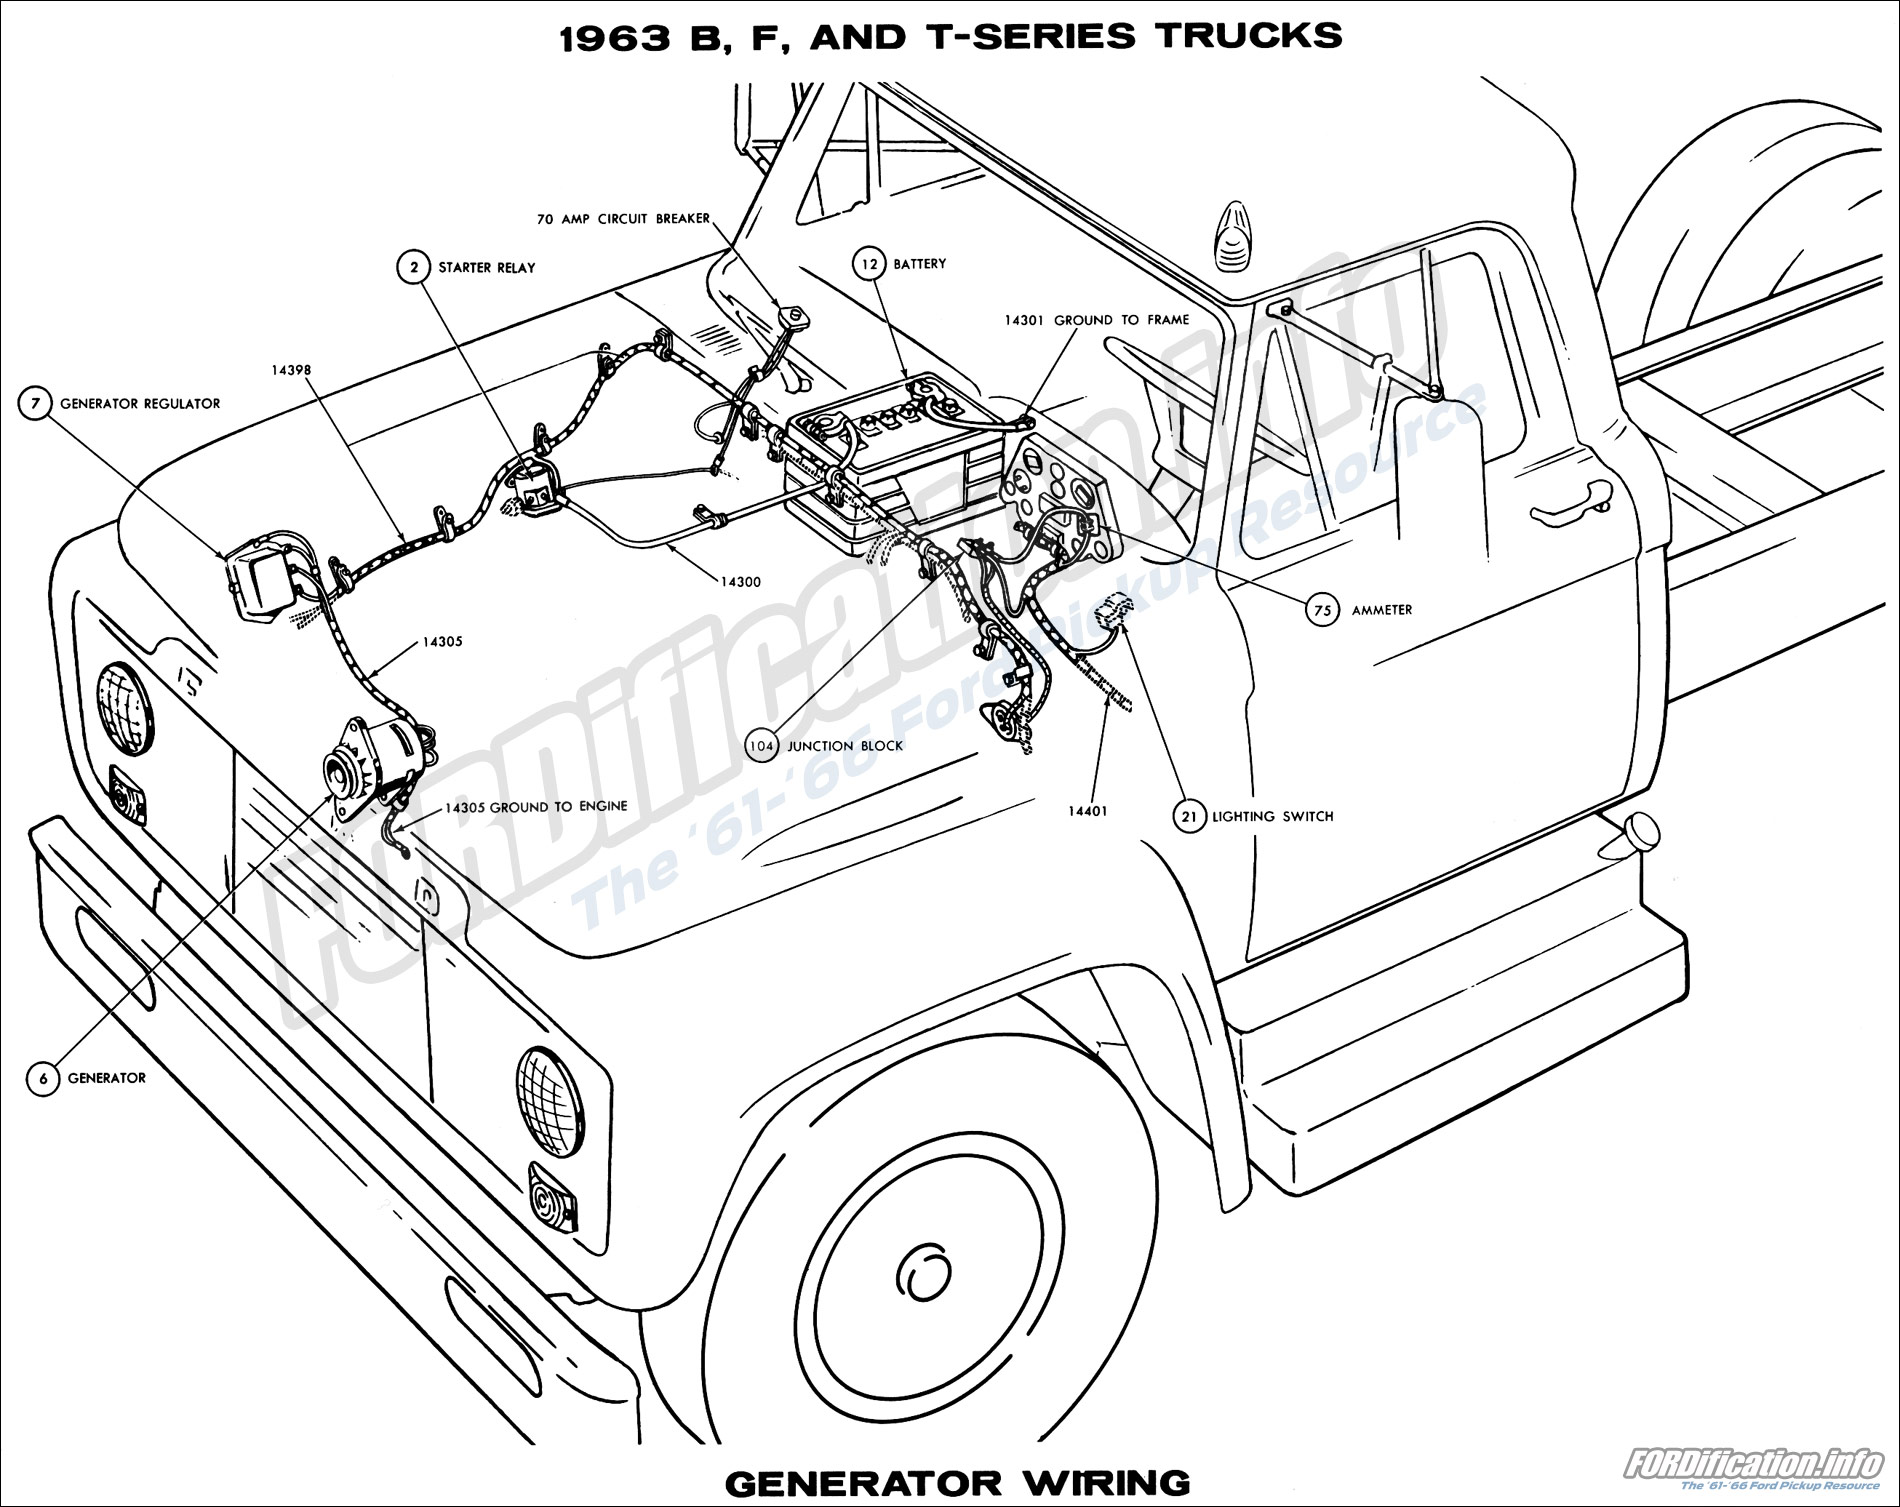 1963 Ford Truck Wiring Diagrams - FORDification.info - The '61-'66 Ford  Pickup Resource | Wiring Schematic For 1963 Ford F100 |  | FORDification.info